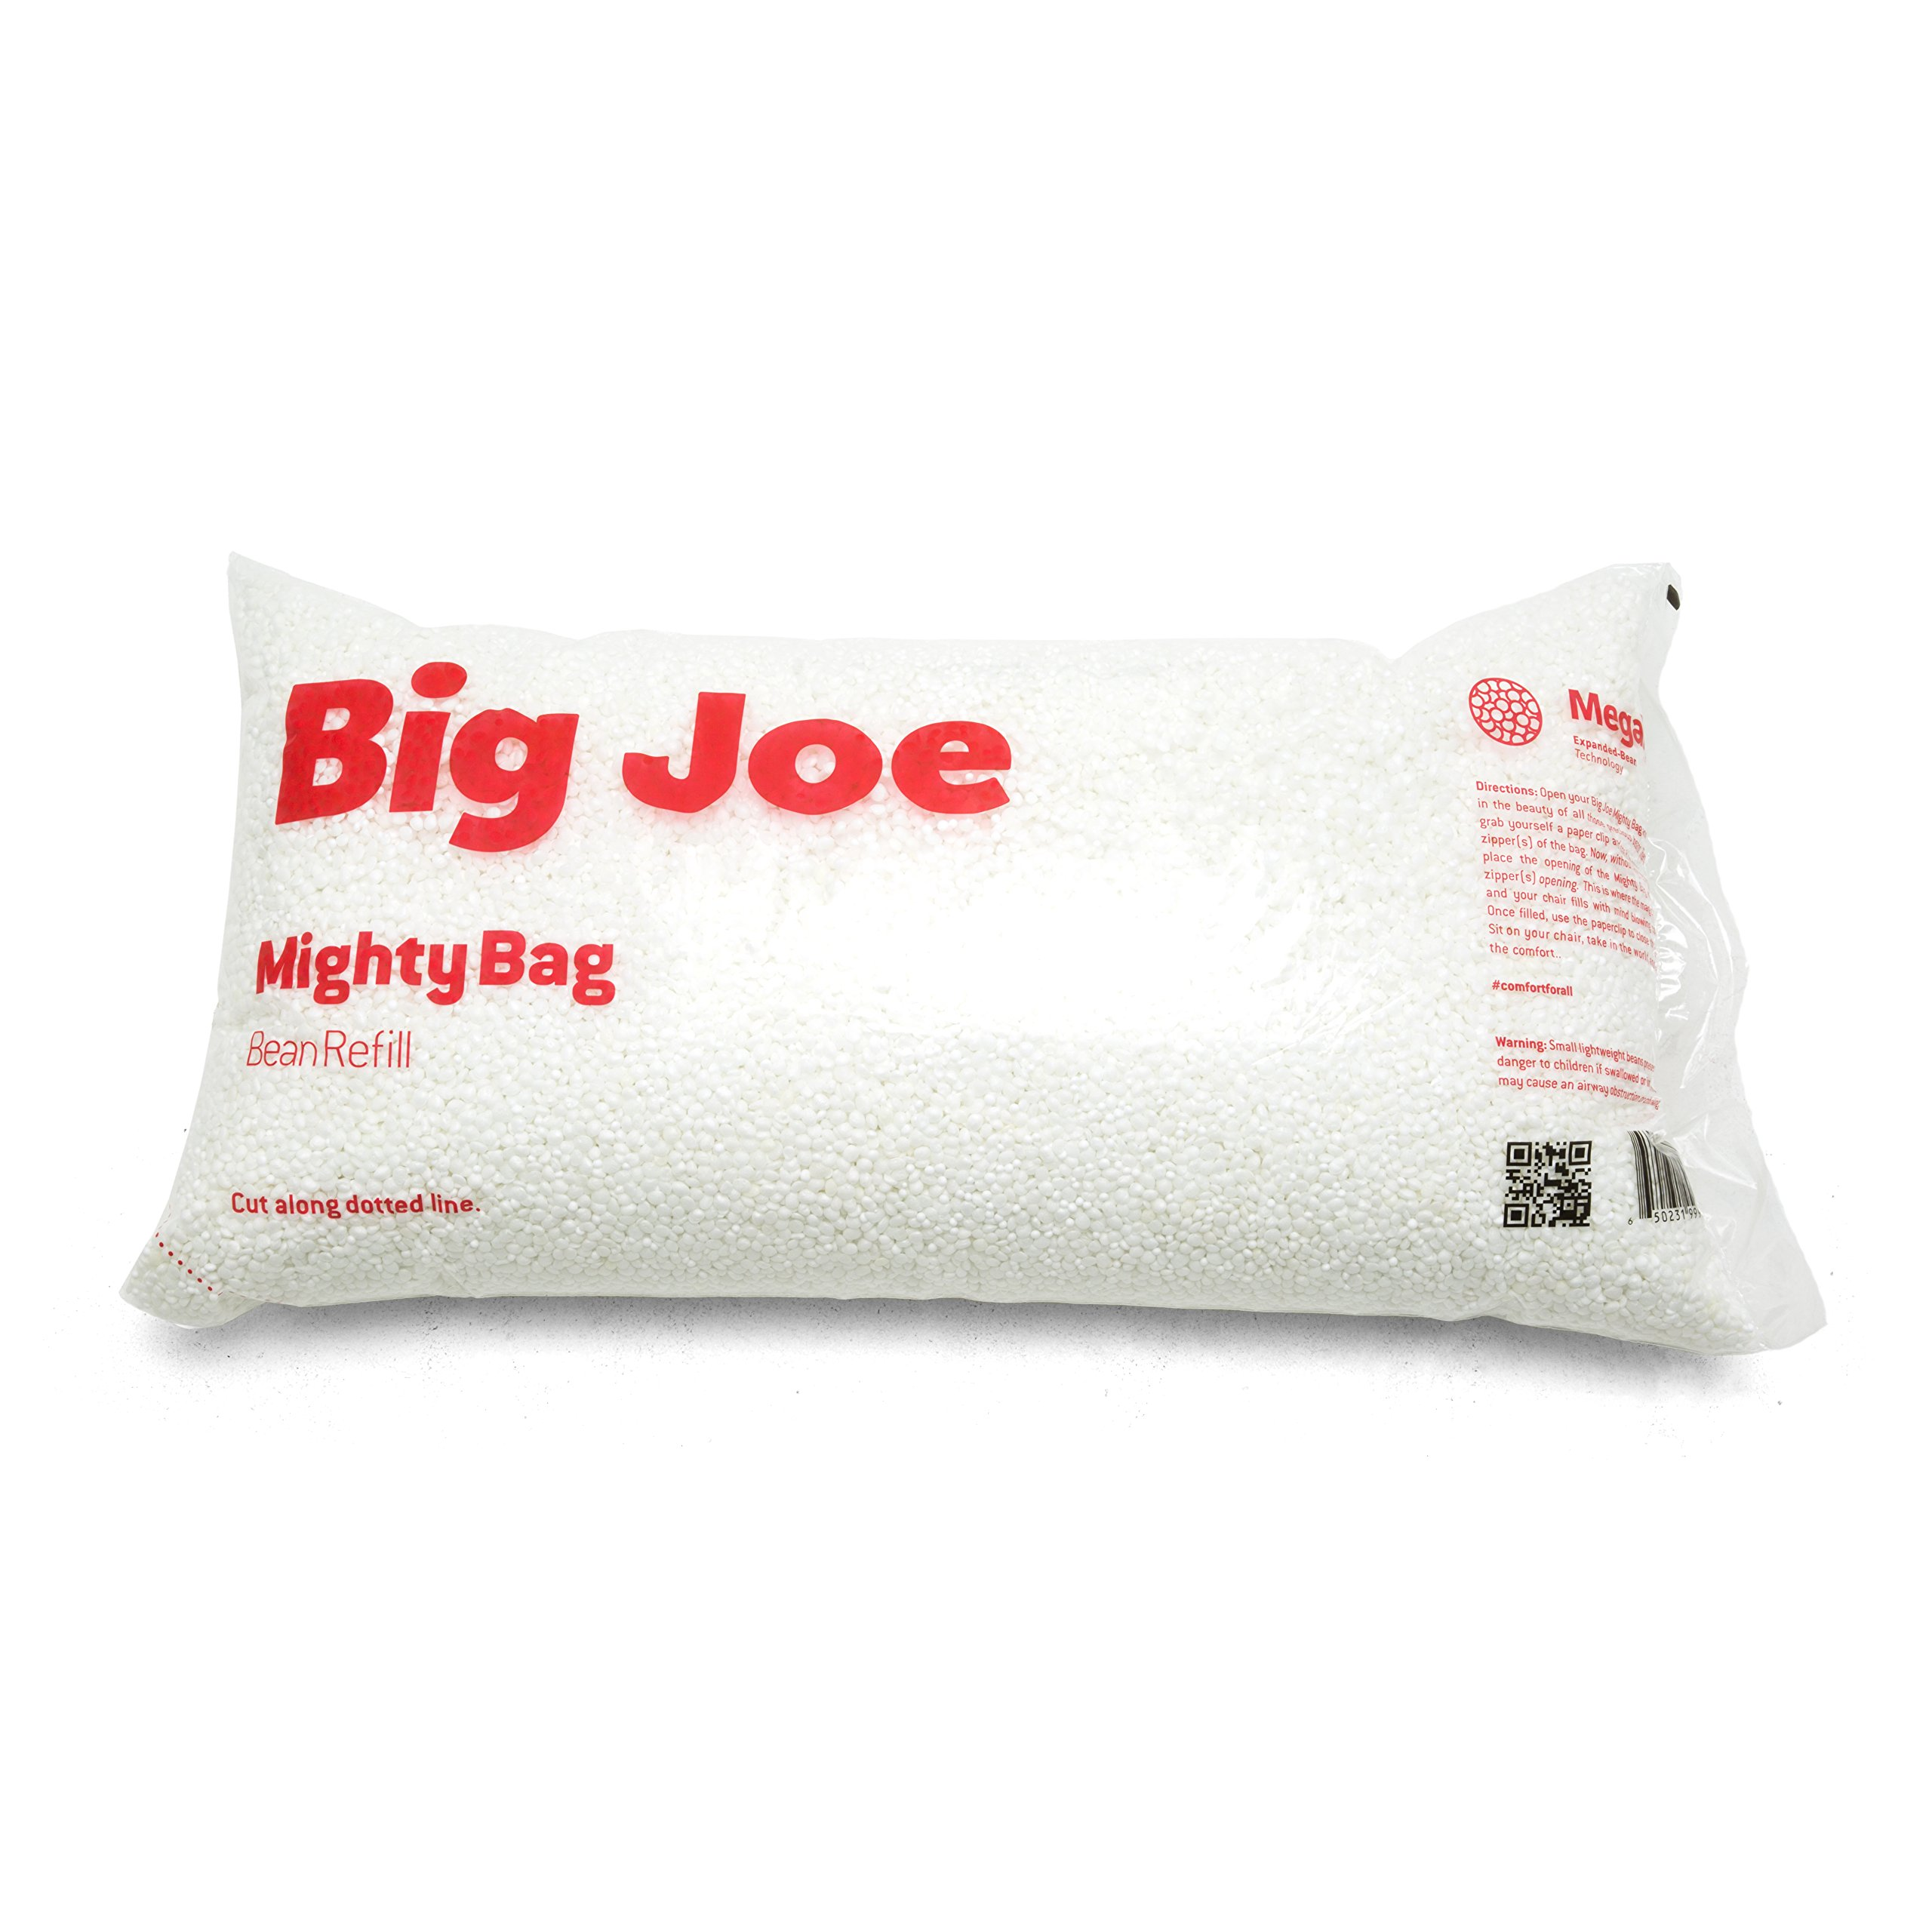 Big Joe Comfort Research Megahh (UltimaX) Bean Bags Refill, 100 L by Big Joe